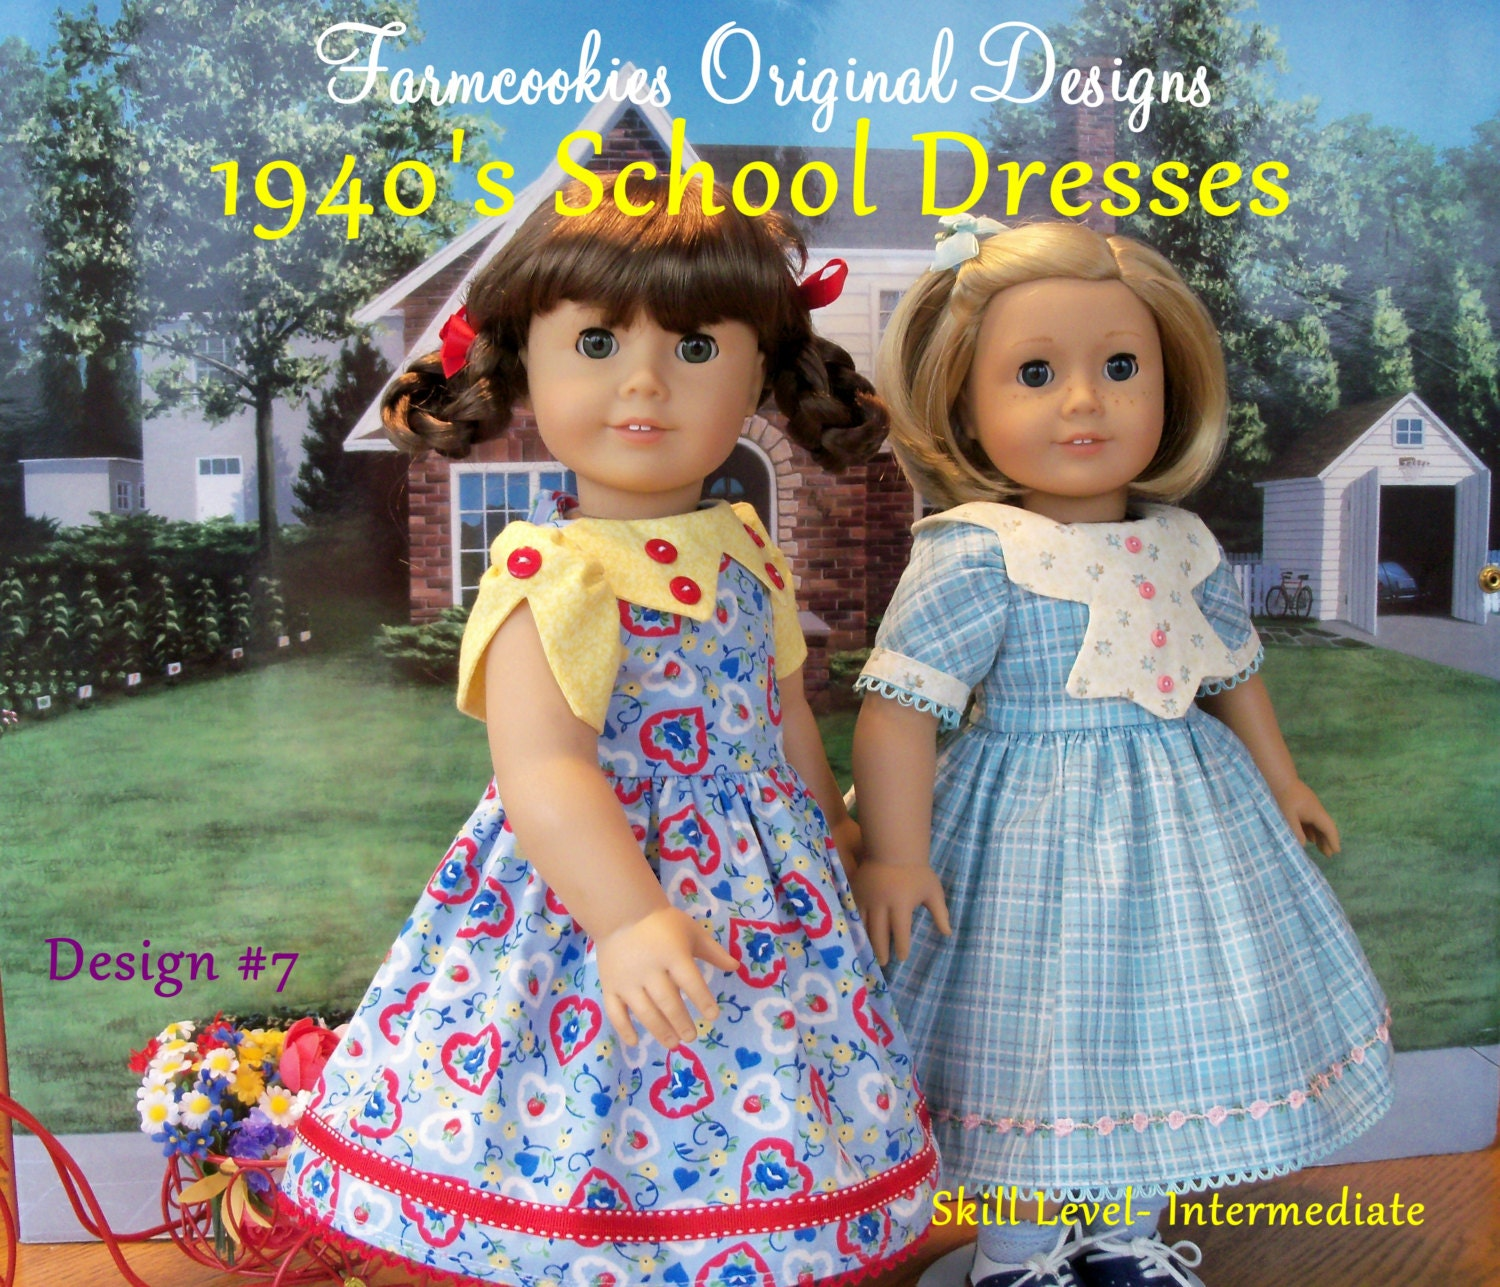 Printed sewing pattern 1940s school dresses by farmcookies printed sewing pattern 1940s school dresses by farmcookies fits like 18 inch american girl doll clothes doll clothes pattern jeuxipadfo Images